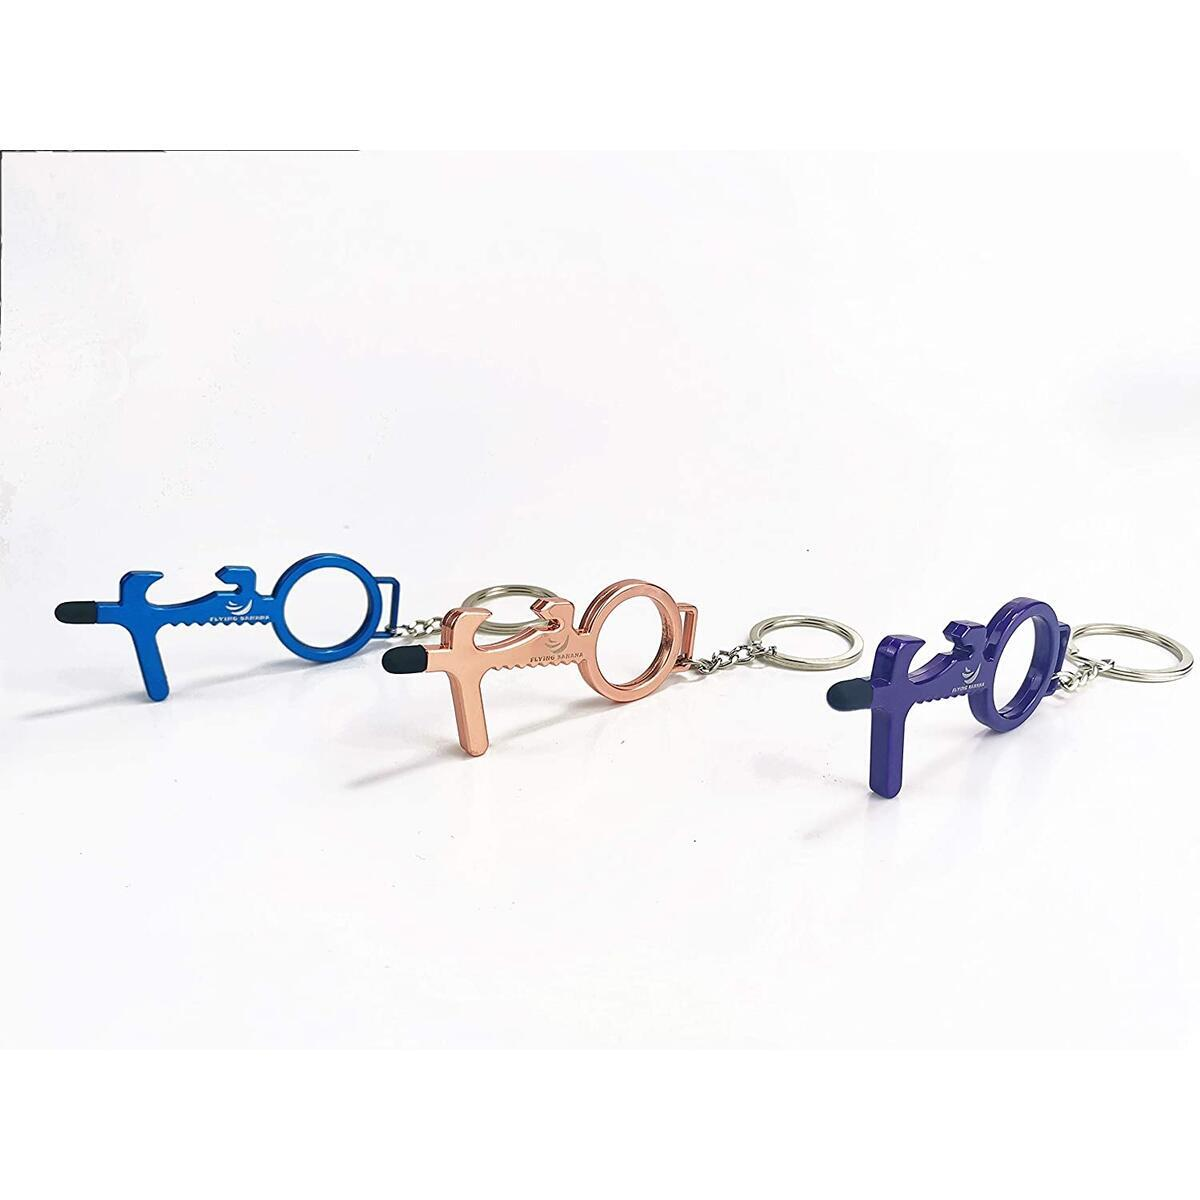 ARGIGU Anti Touch Door Opener Tool Multifunctional No Touch Door Opener Hand Tool 3Pcs Set Blue, Purple, Rose Gold Serves as Bottle Opener and Stylus Pad - Key Ring Included